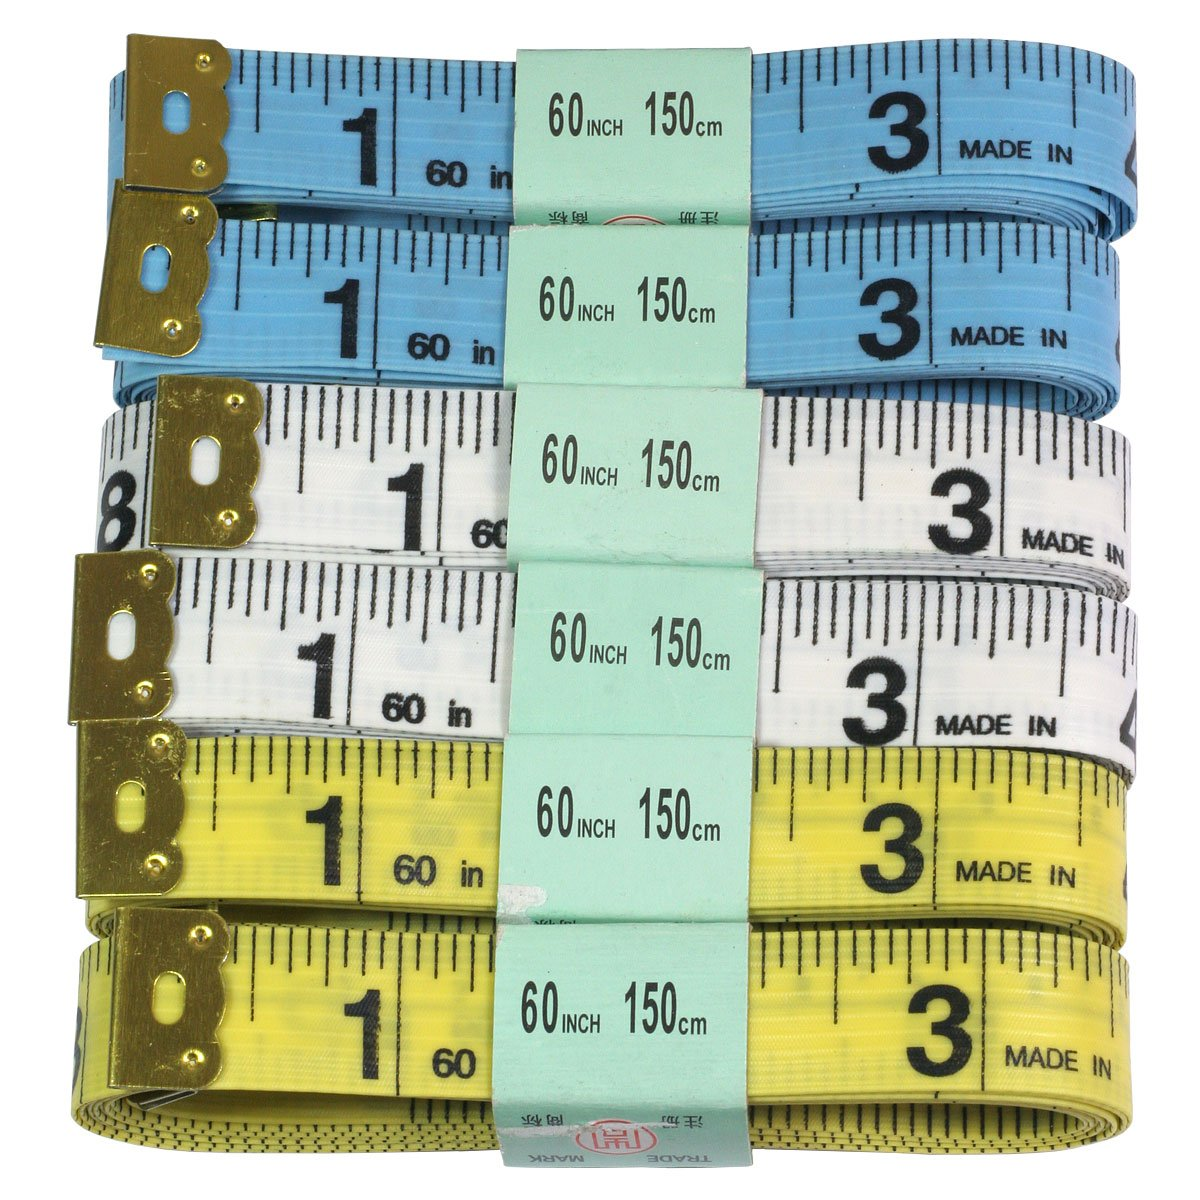 HTS 103D3 6 Pc 60/150cm Sewing Tape Measure Hobby Tool Supply